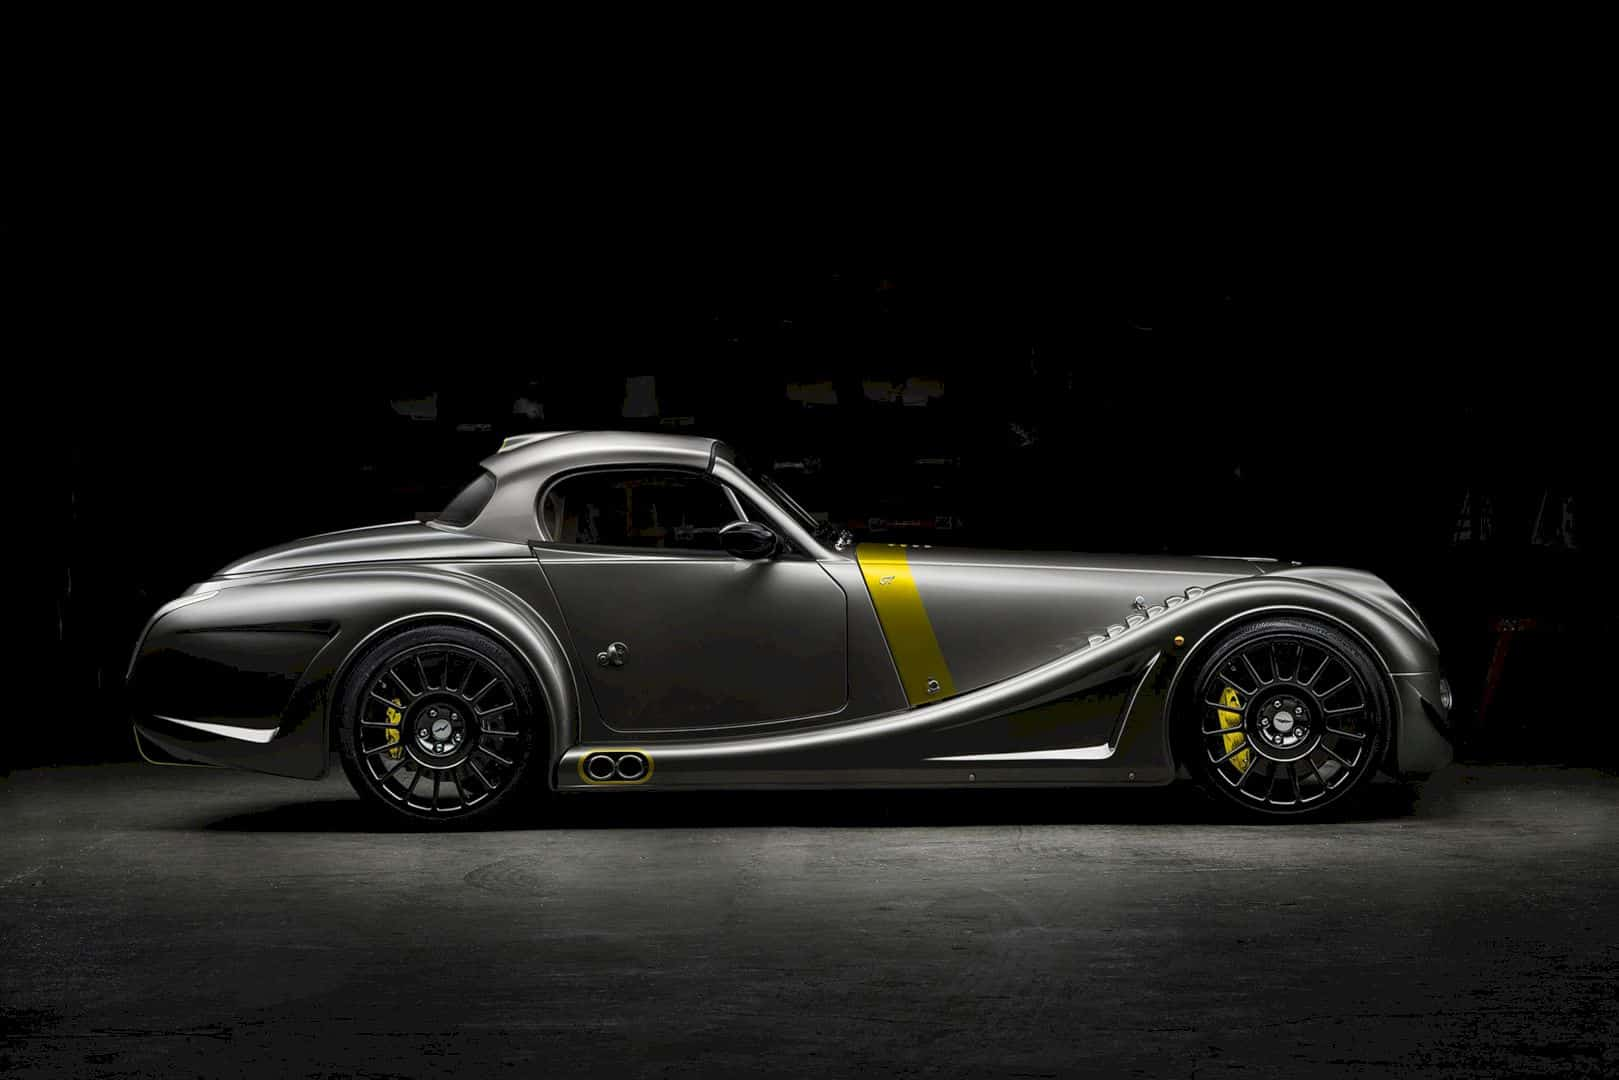 The Morgan Aero Gt 3